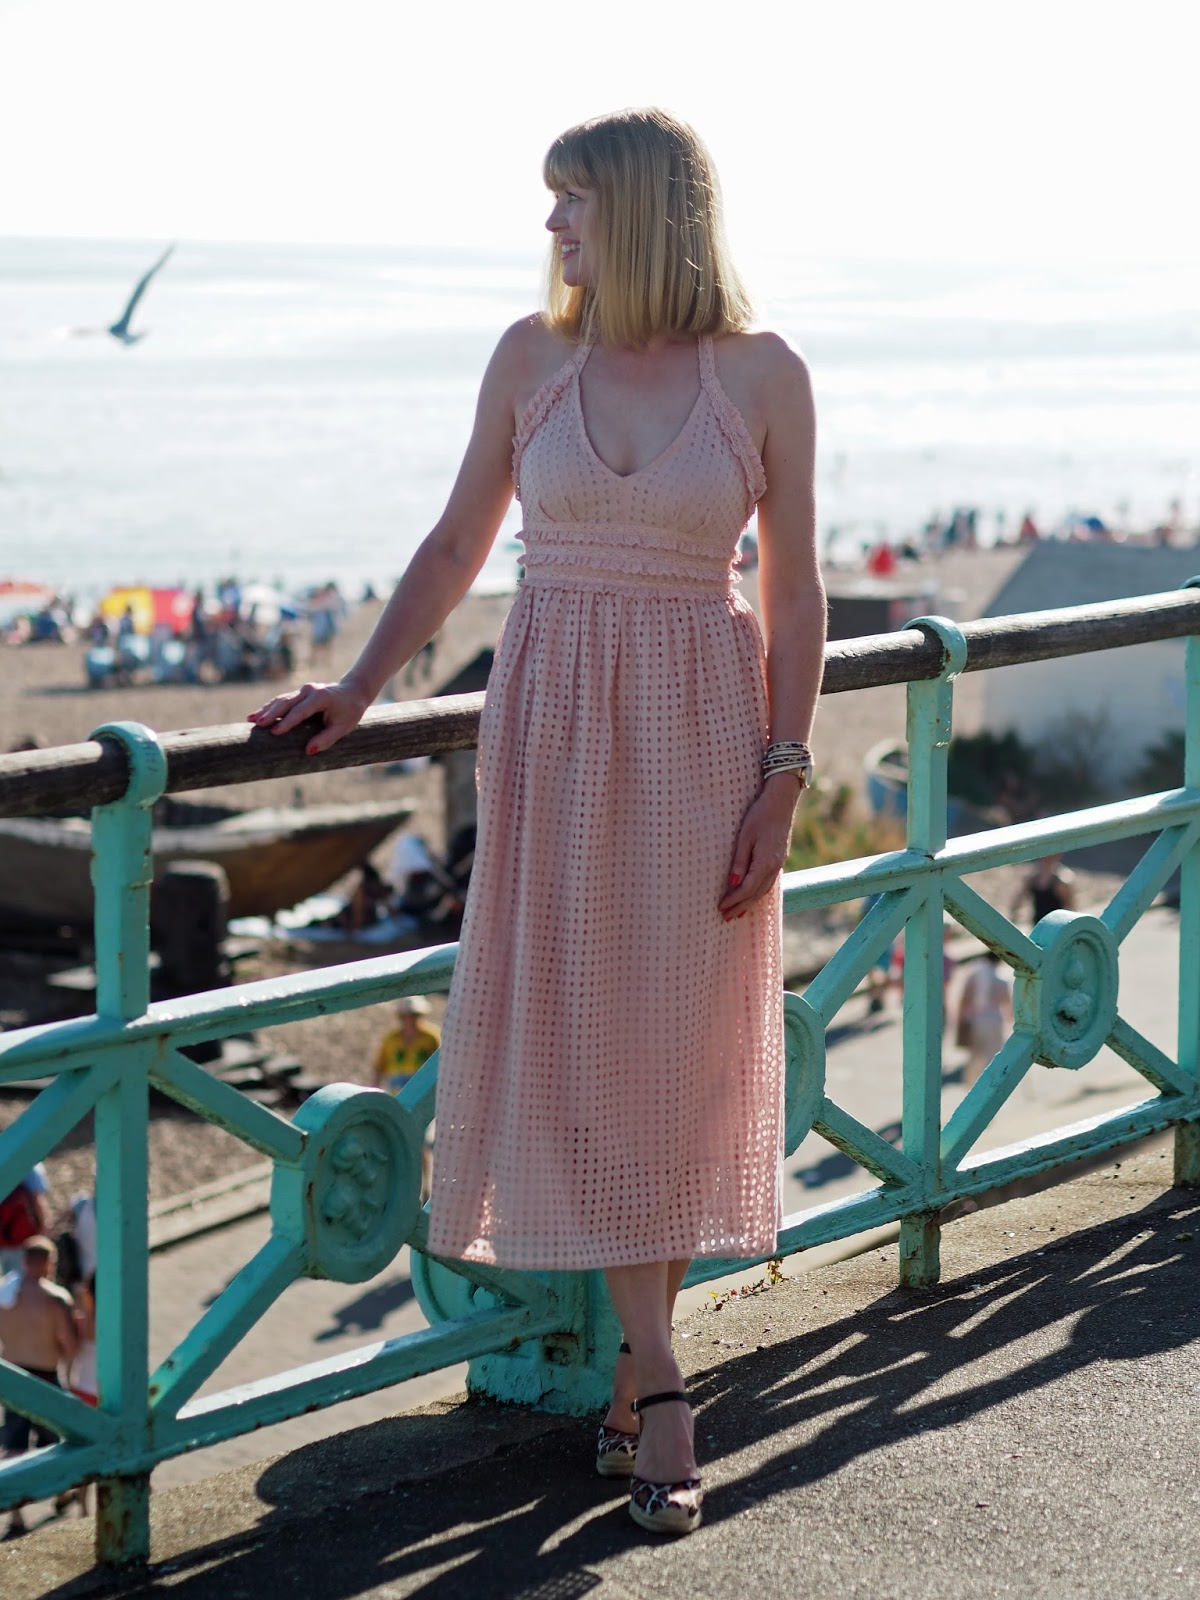 Topshop pink broderie anglaise ruffle halter neck midi dress with leopard print espadrilles